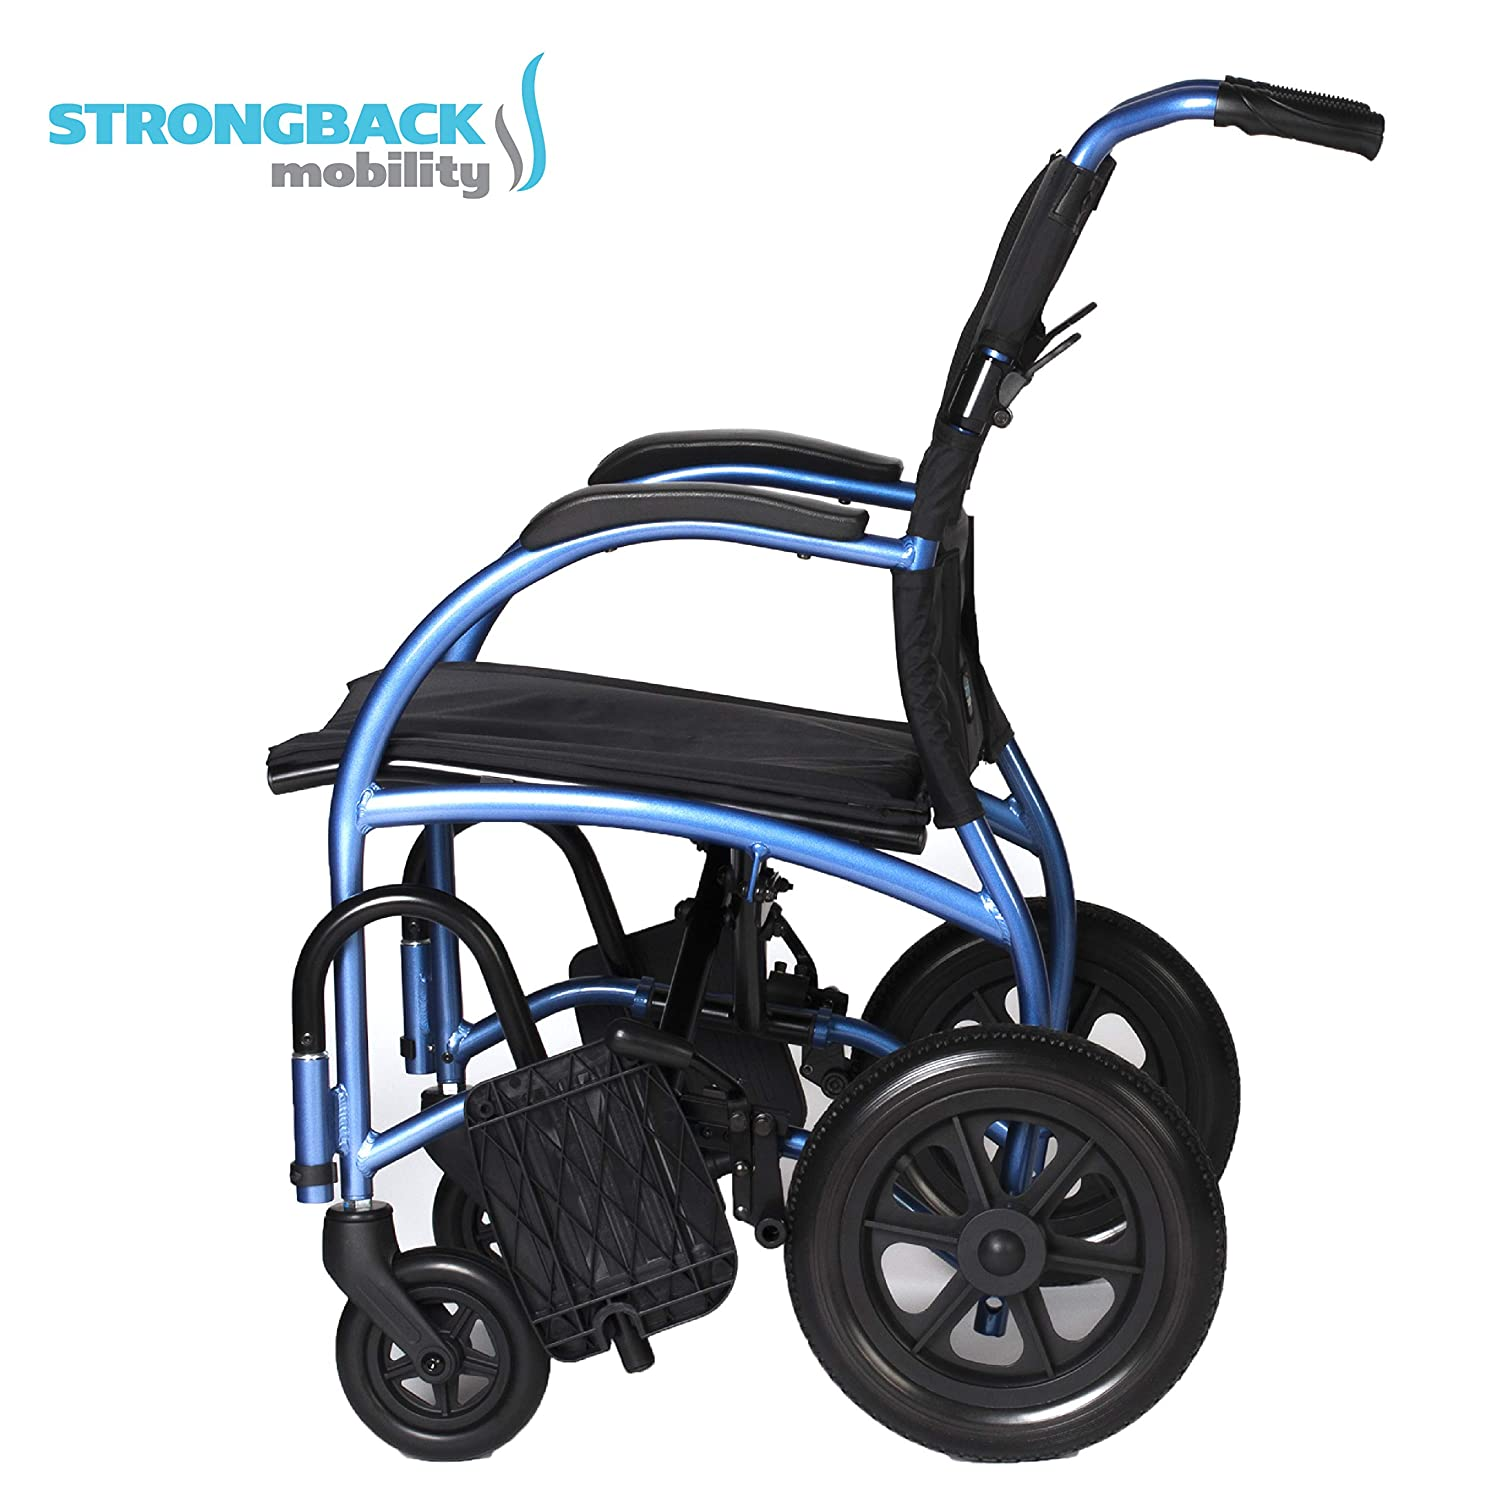 B01NAV0DQU Strongback Mobility Excursion 12 Wheelchair 81G3ILme4AL